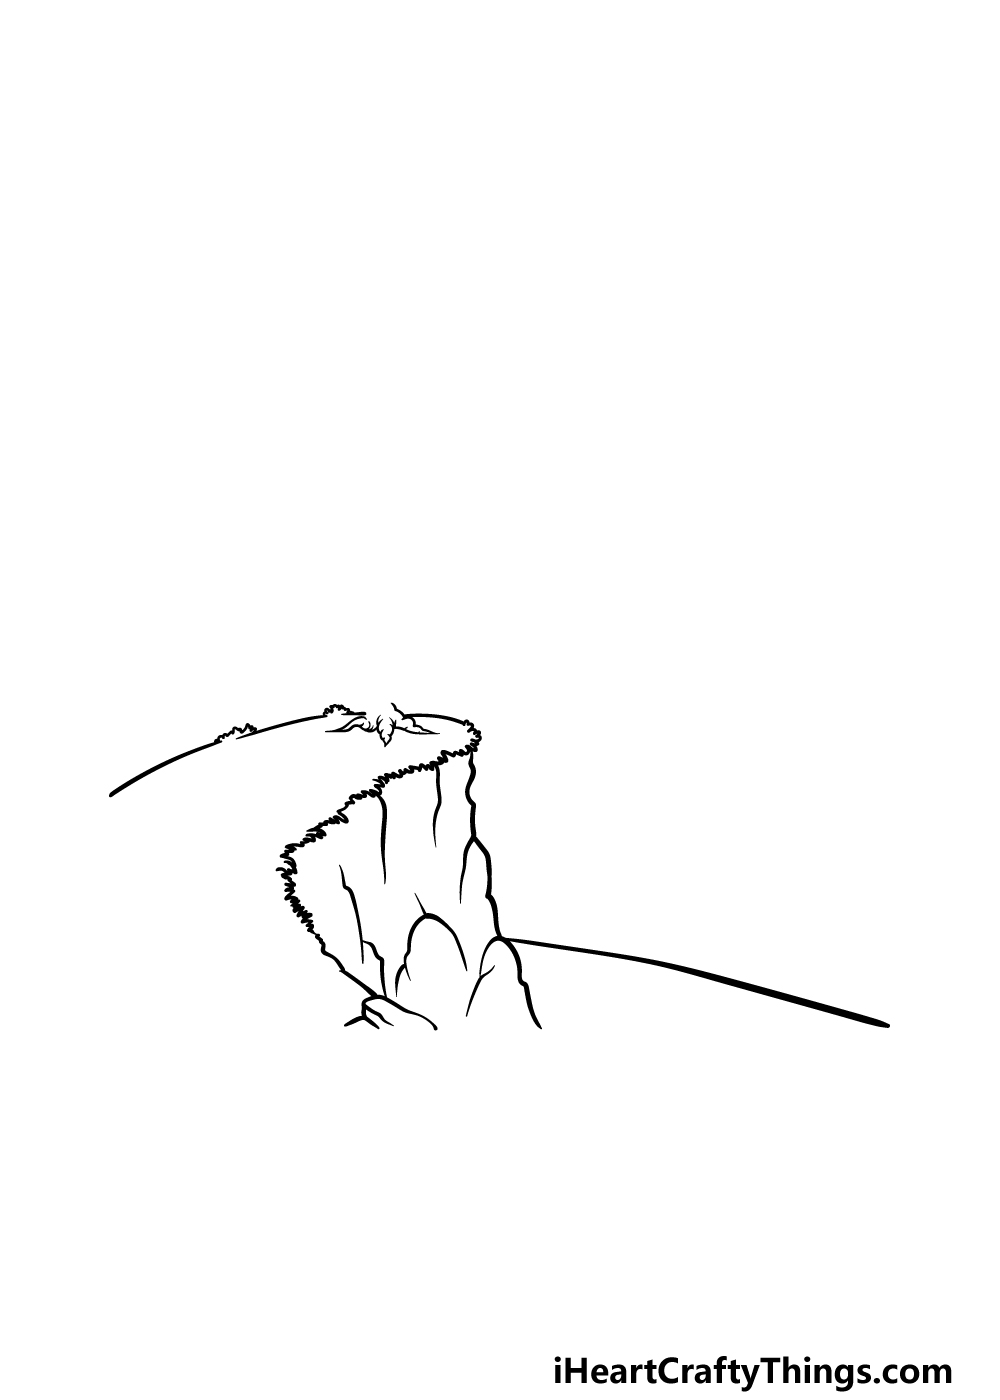 drawing a cliff step 3